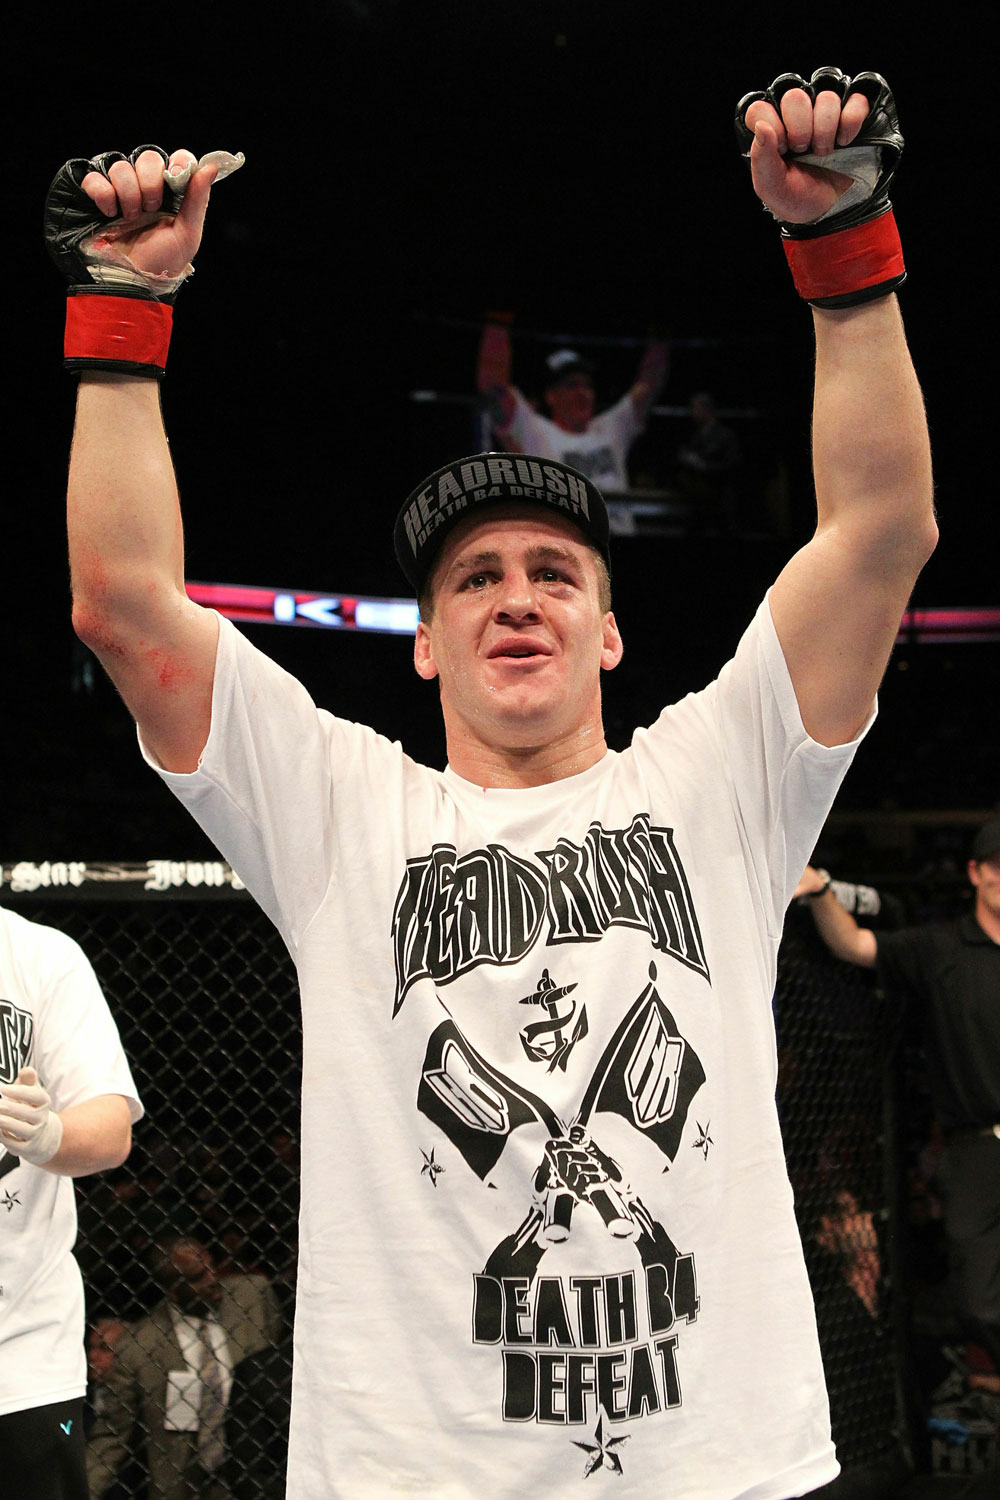 Paul Kelly celebrates his win over TJ O'Brien during UFC 123